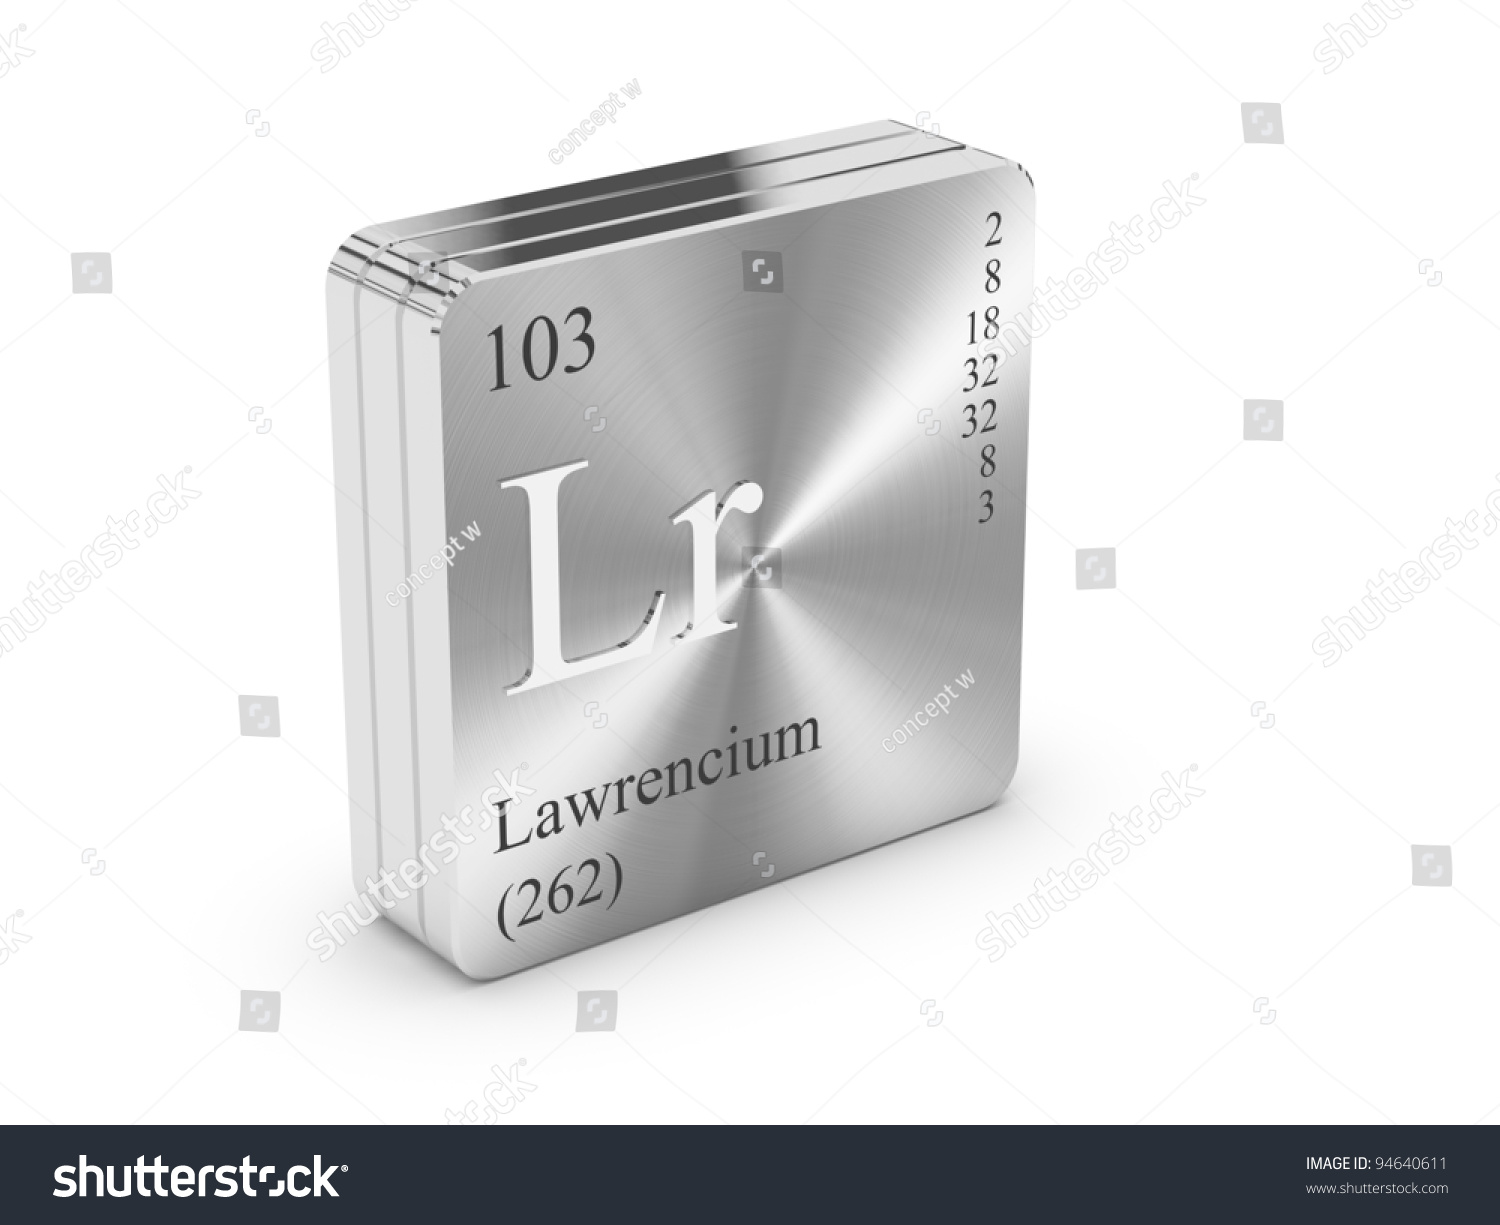 lawrencium periodic table - photo #26